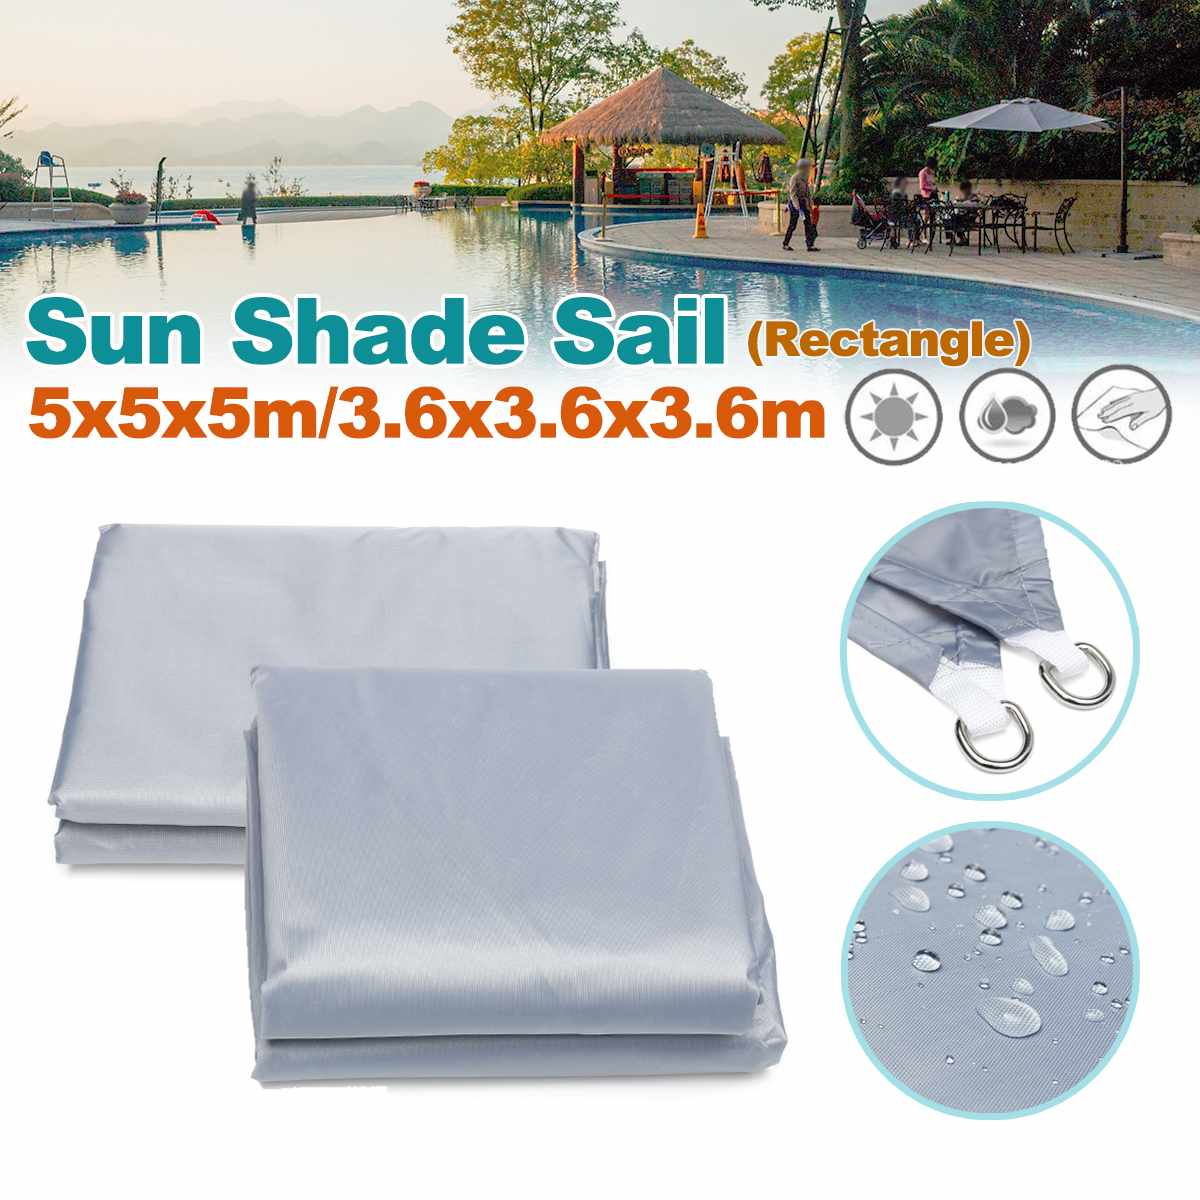 3.6m/5m Triangle Waterproof Sun Shield Shape Awning Cover Cap Outdoor Garden Shade